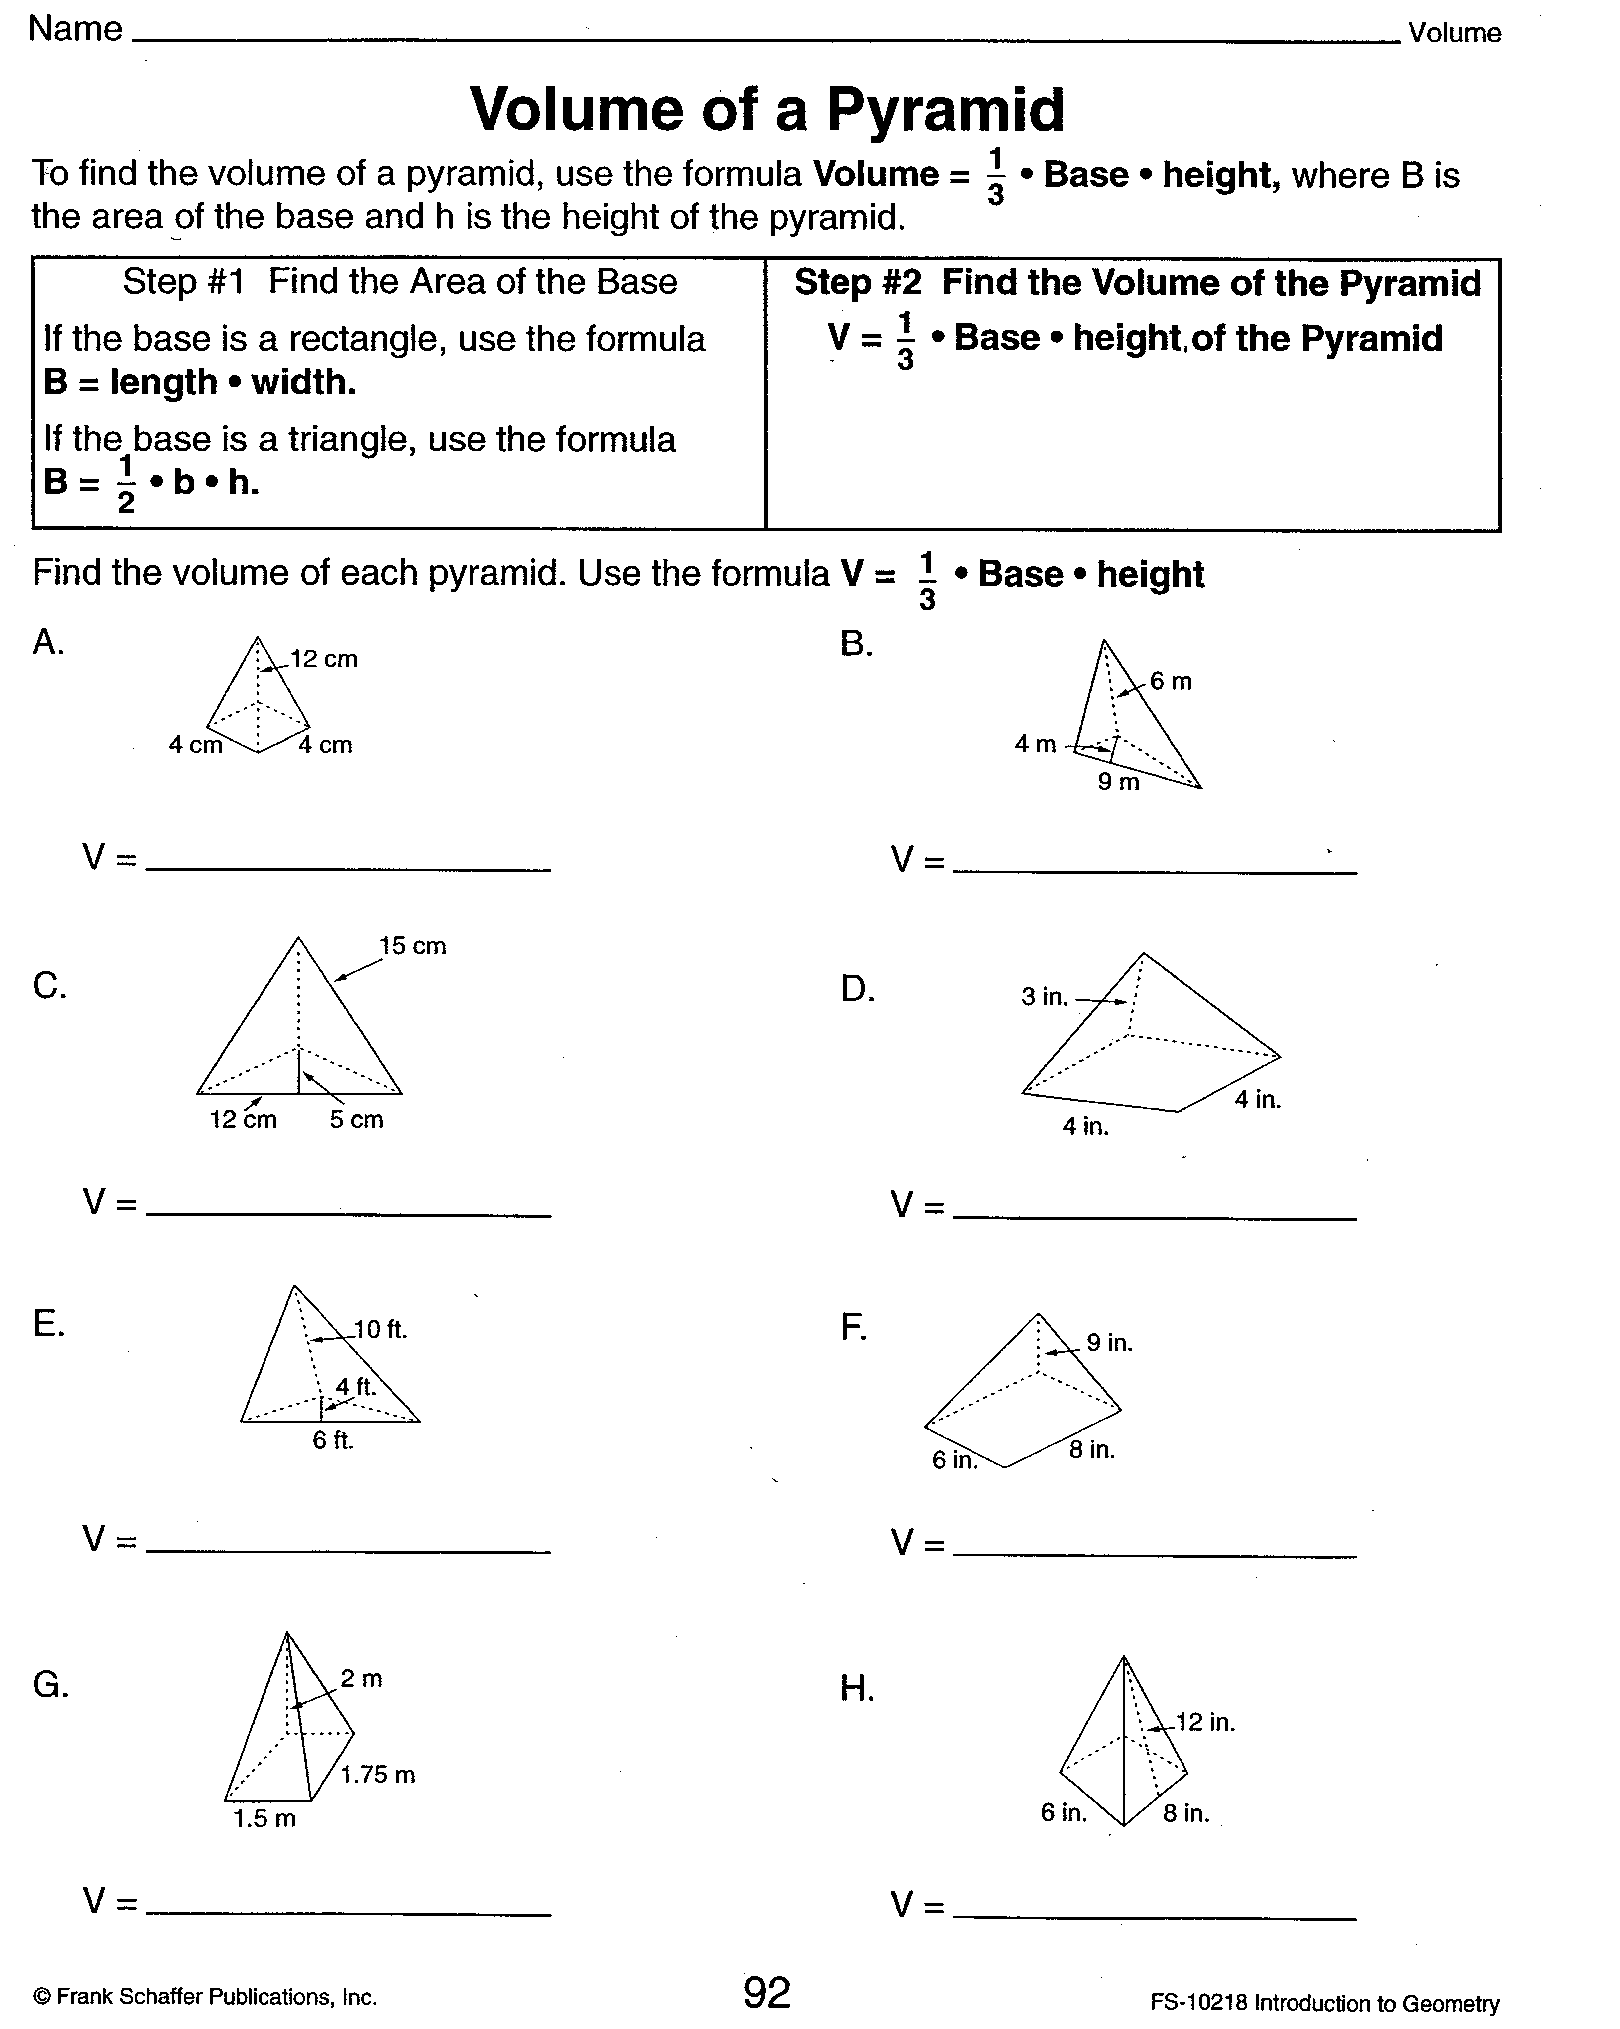 16 Best Images Of Triangular Pyramid Surface Area Worksheet